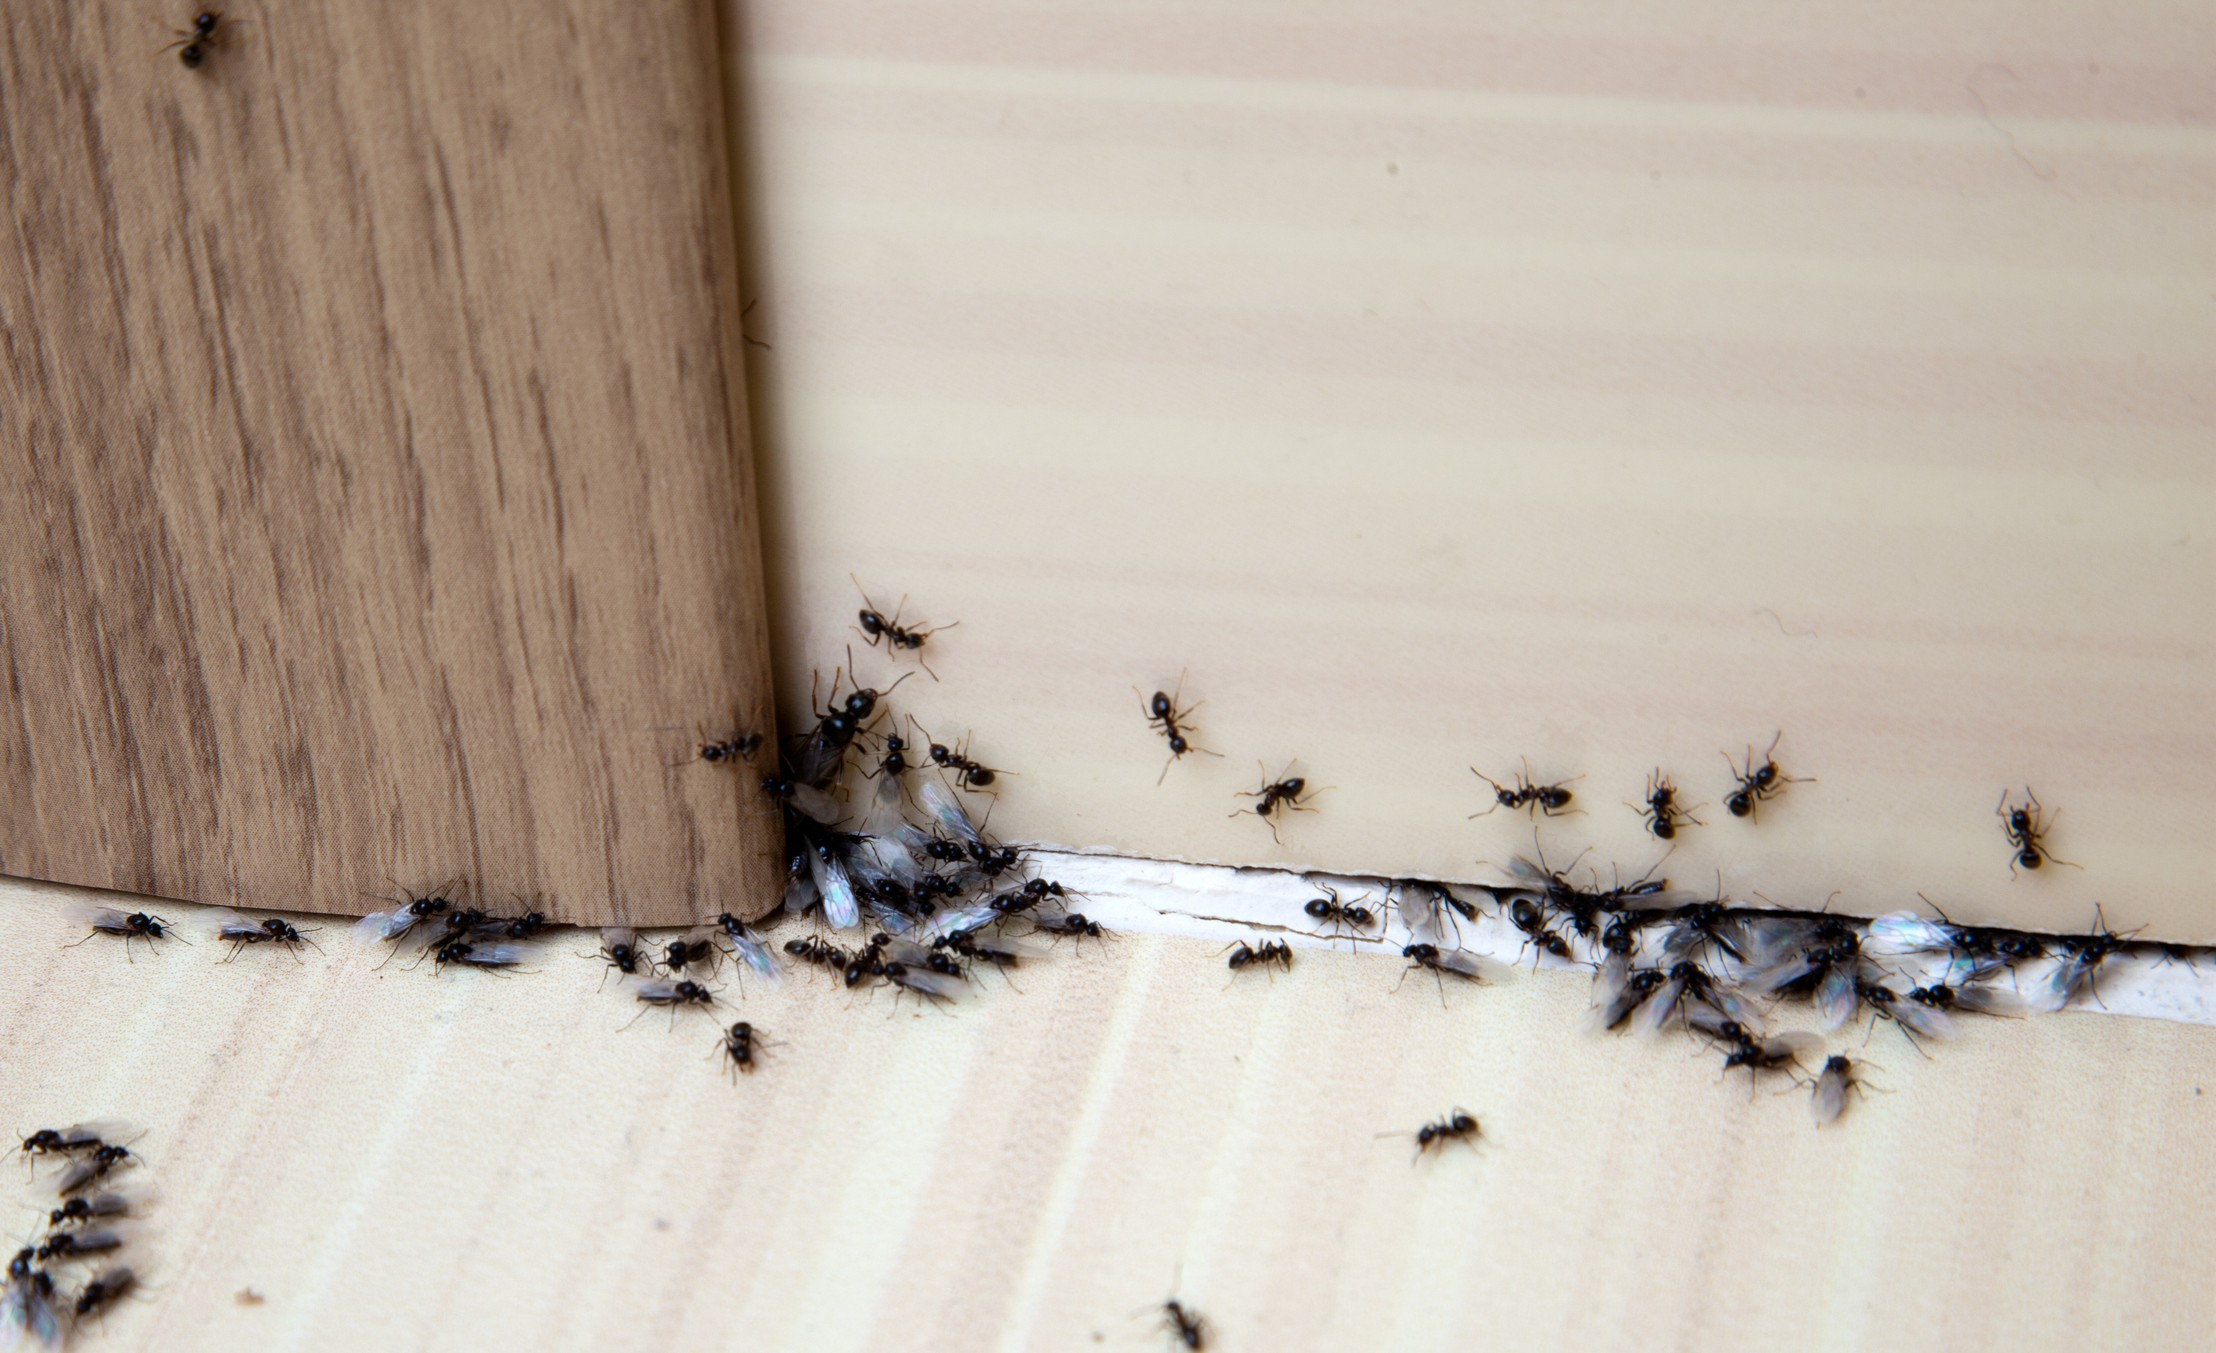 15 Common Pests That Are Destroying Your Home